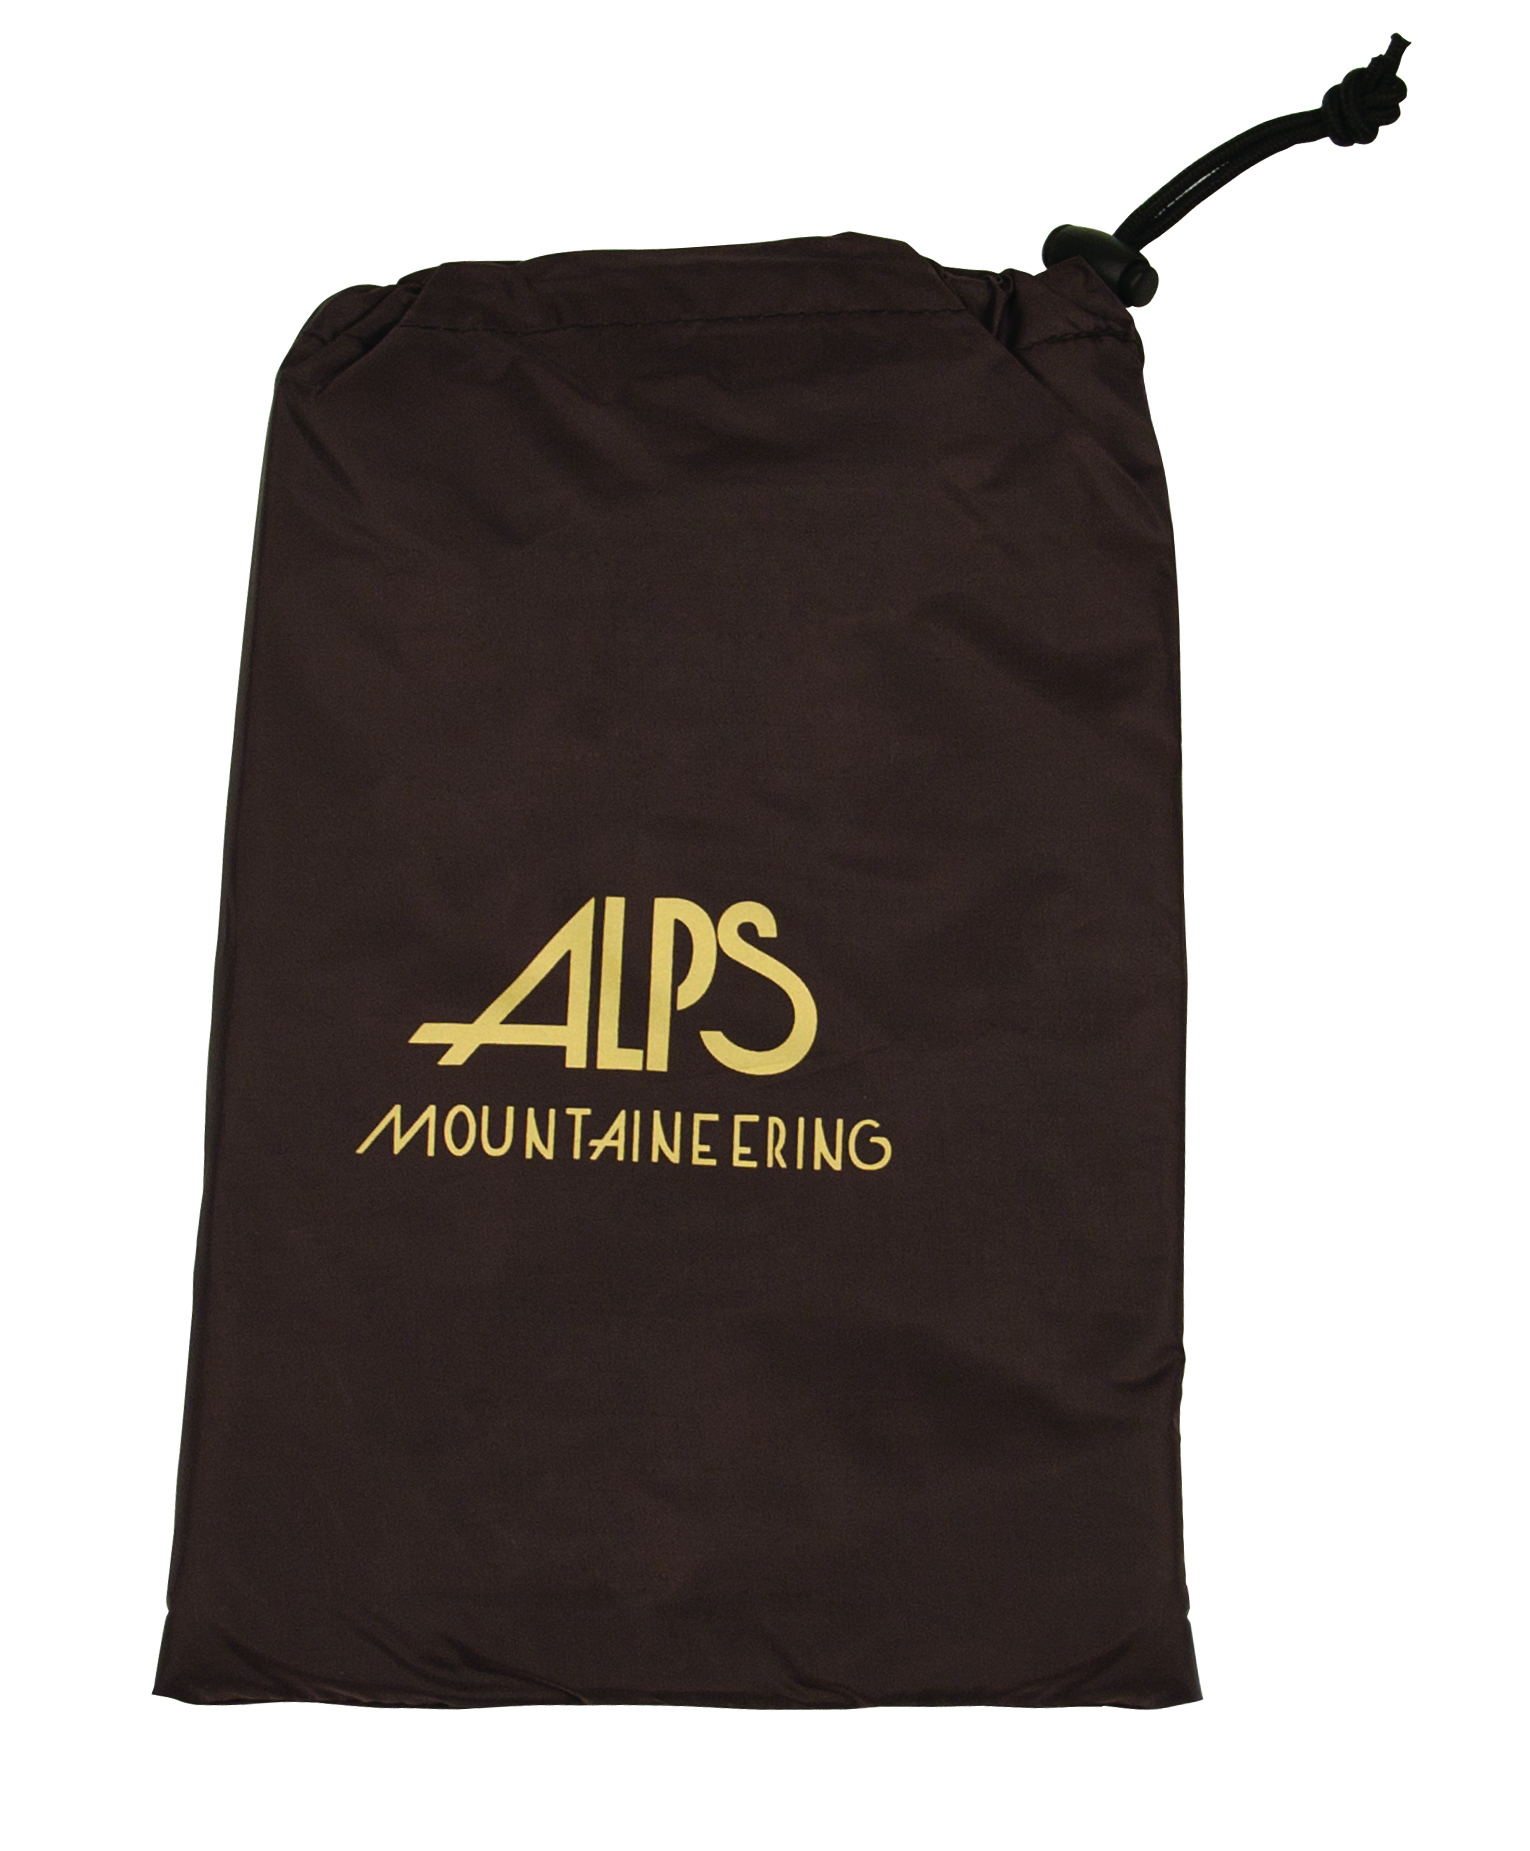 ALPS Mountaineering Chaos 3 Floor Saver